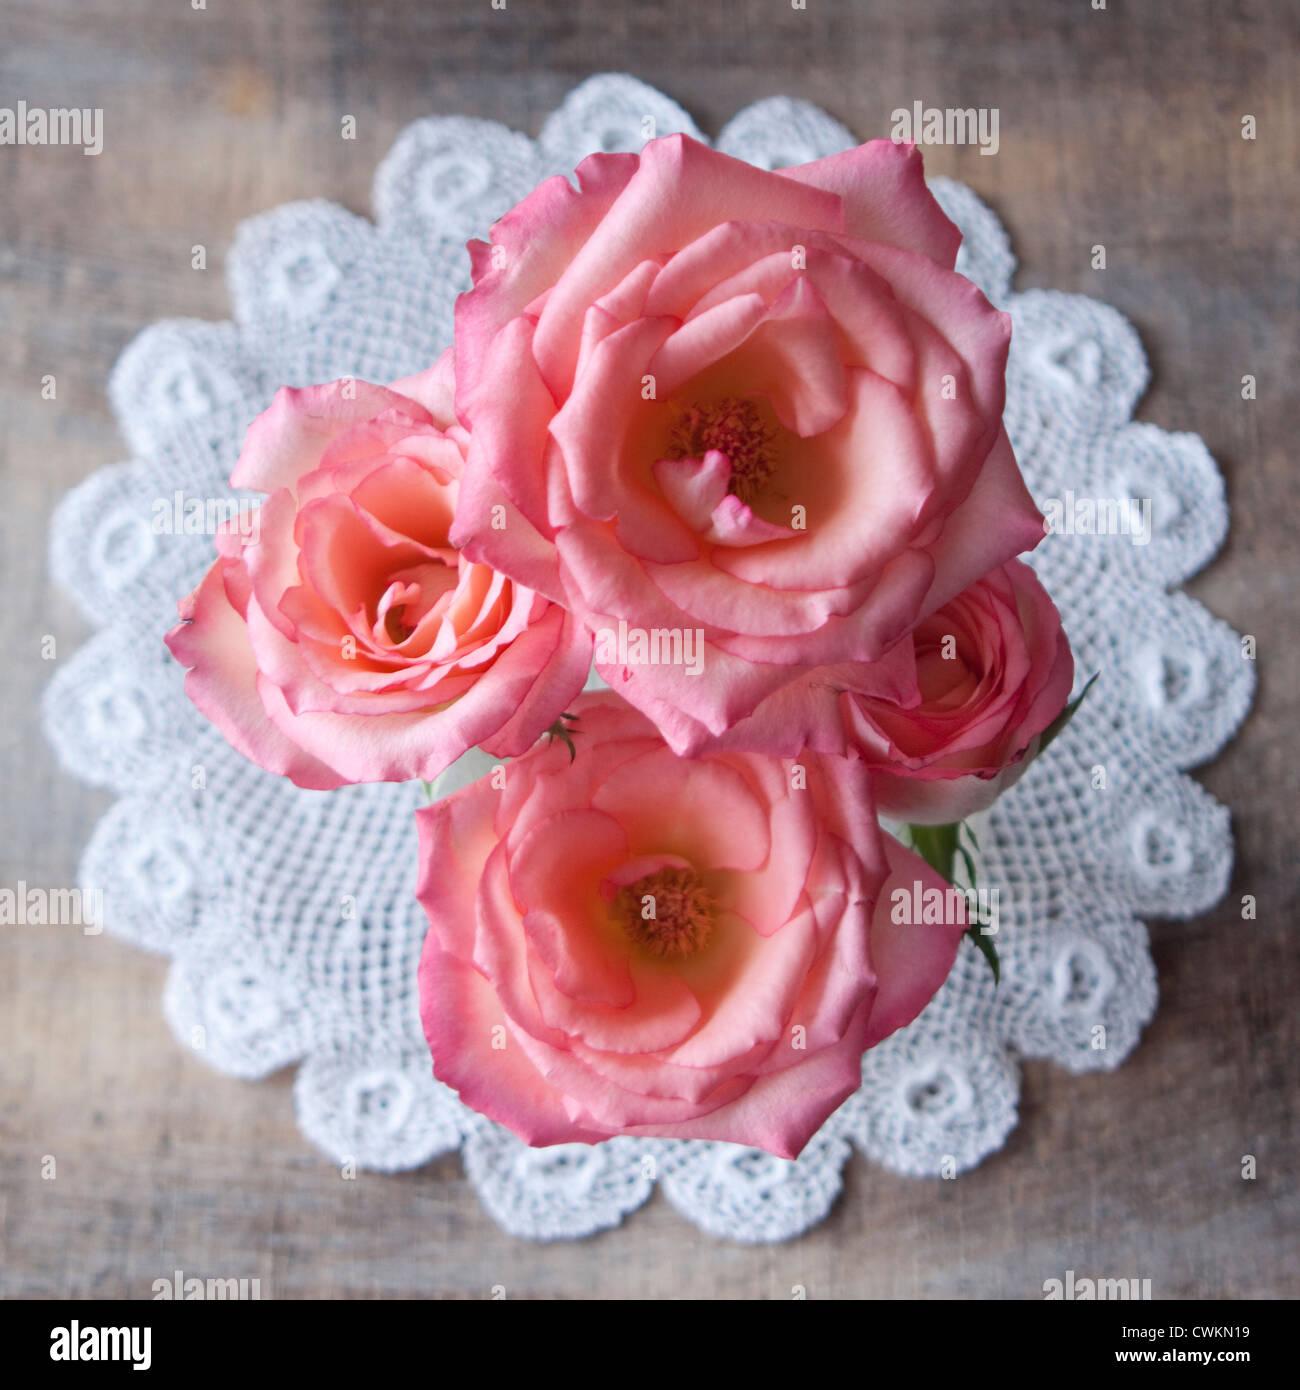 roses on a table with decoration, shabby chic - Stock Image